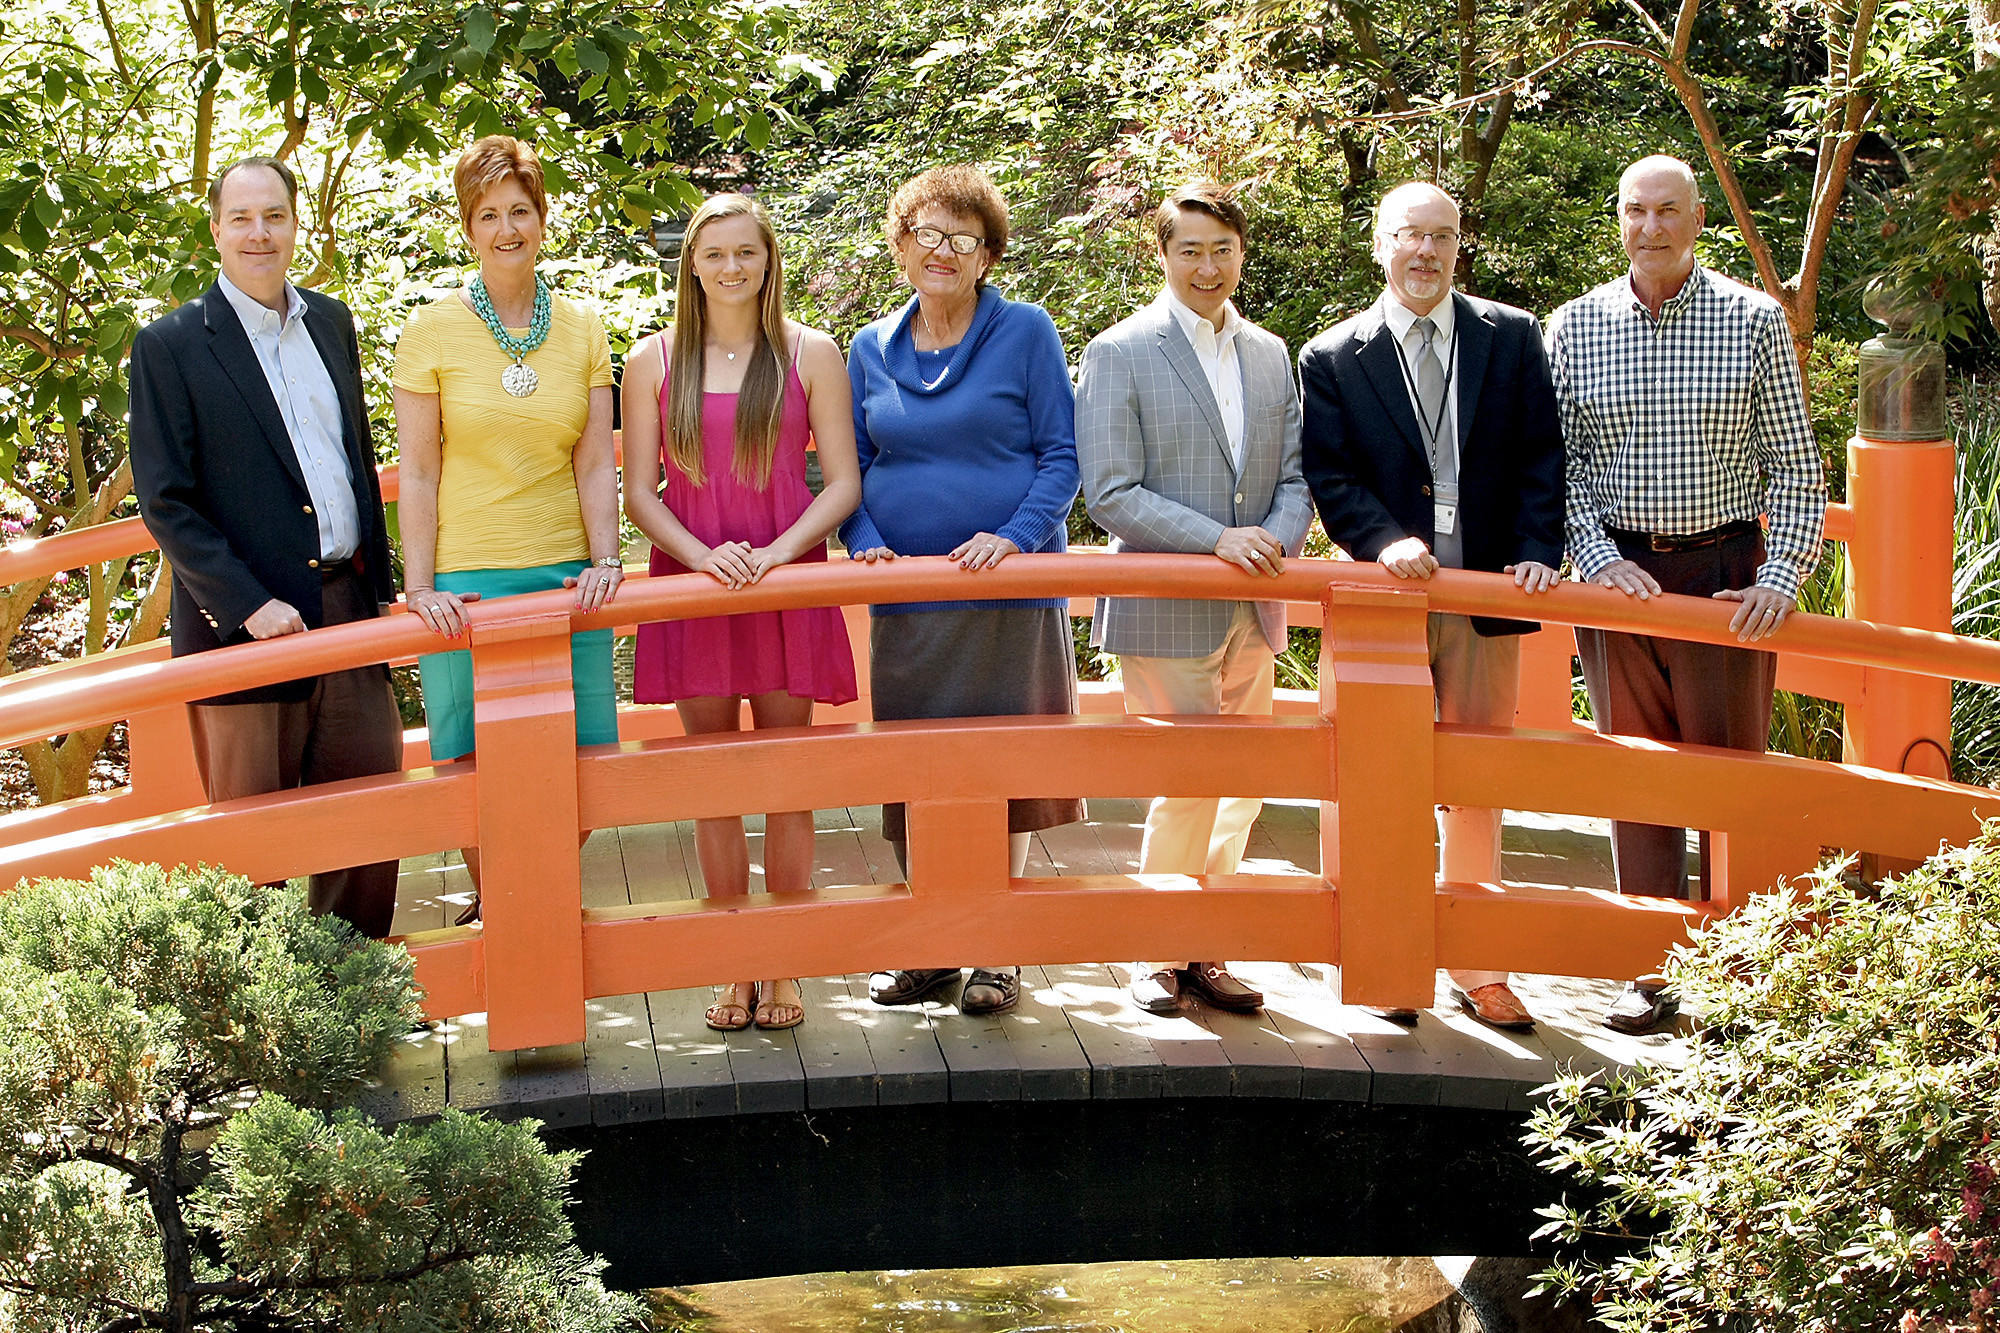 Tupper Award winners are from the left, Steve Del Guercio, Susan Boyd, Kyla Bradley, Harriet Hammons, Joel Peterson, Mark Totten and Tony Angelica. Photographed at Descanso Gardens on Monday, April 14, 2014.